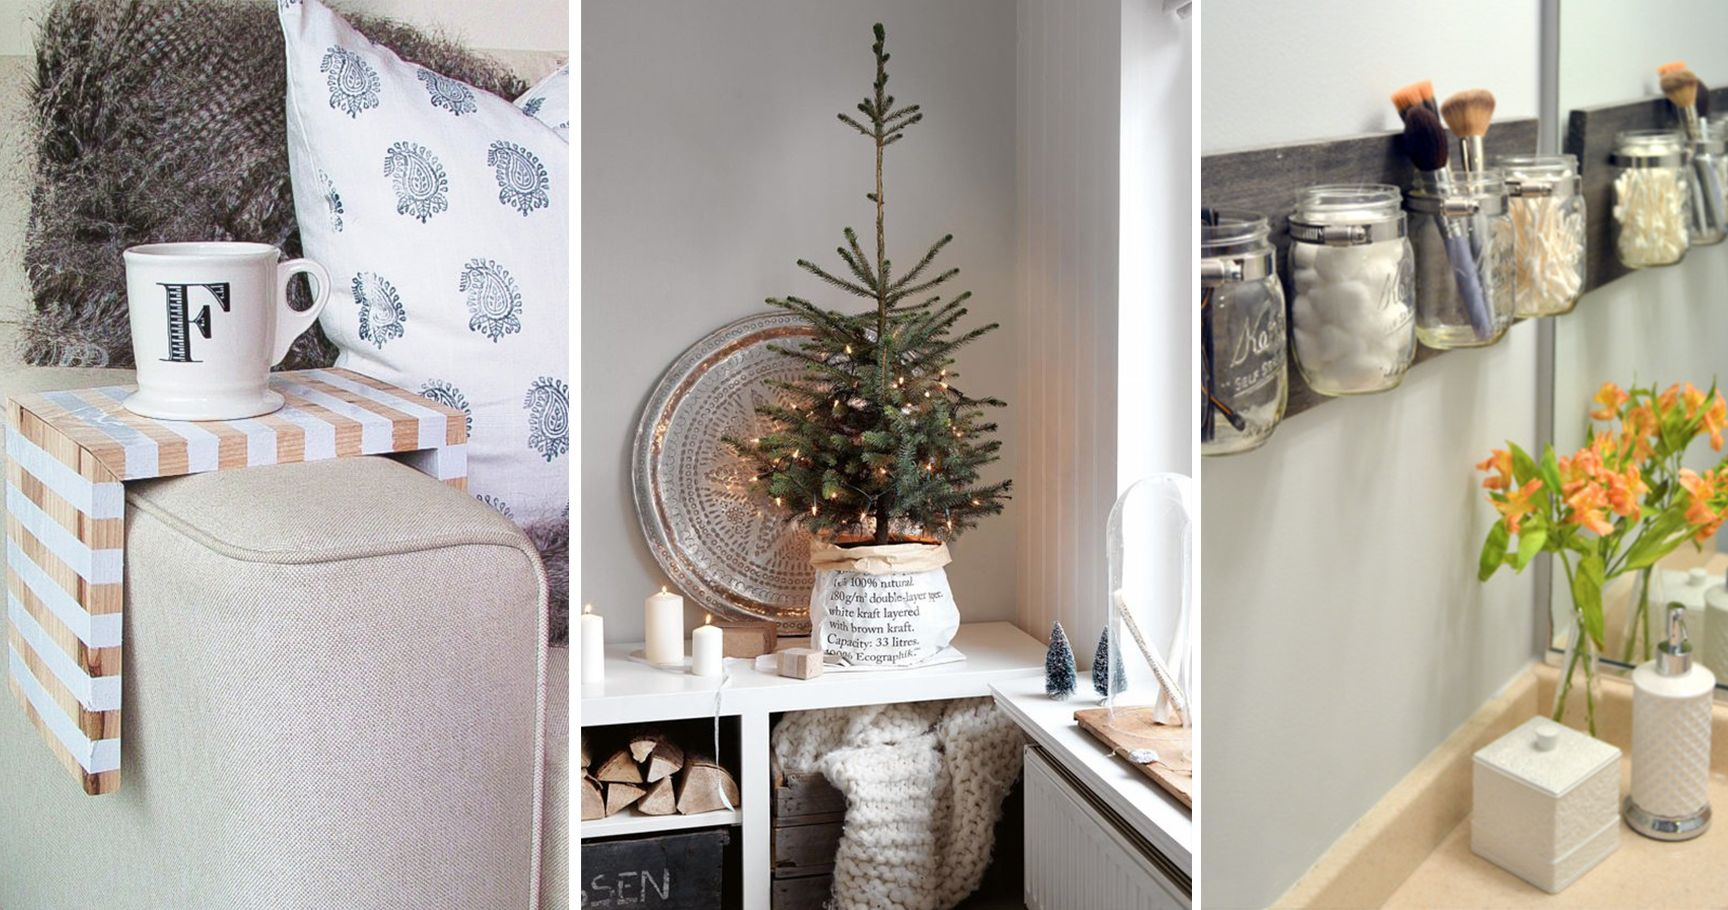 15 DIY Projects To Make For The Cottage This Winter